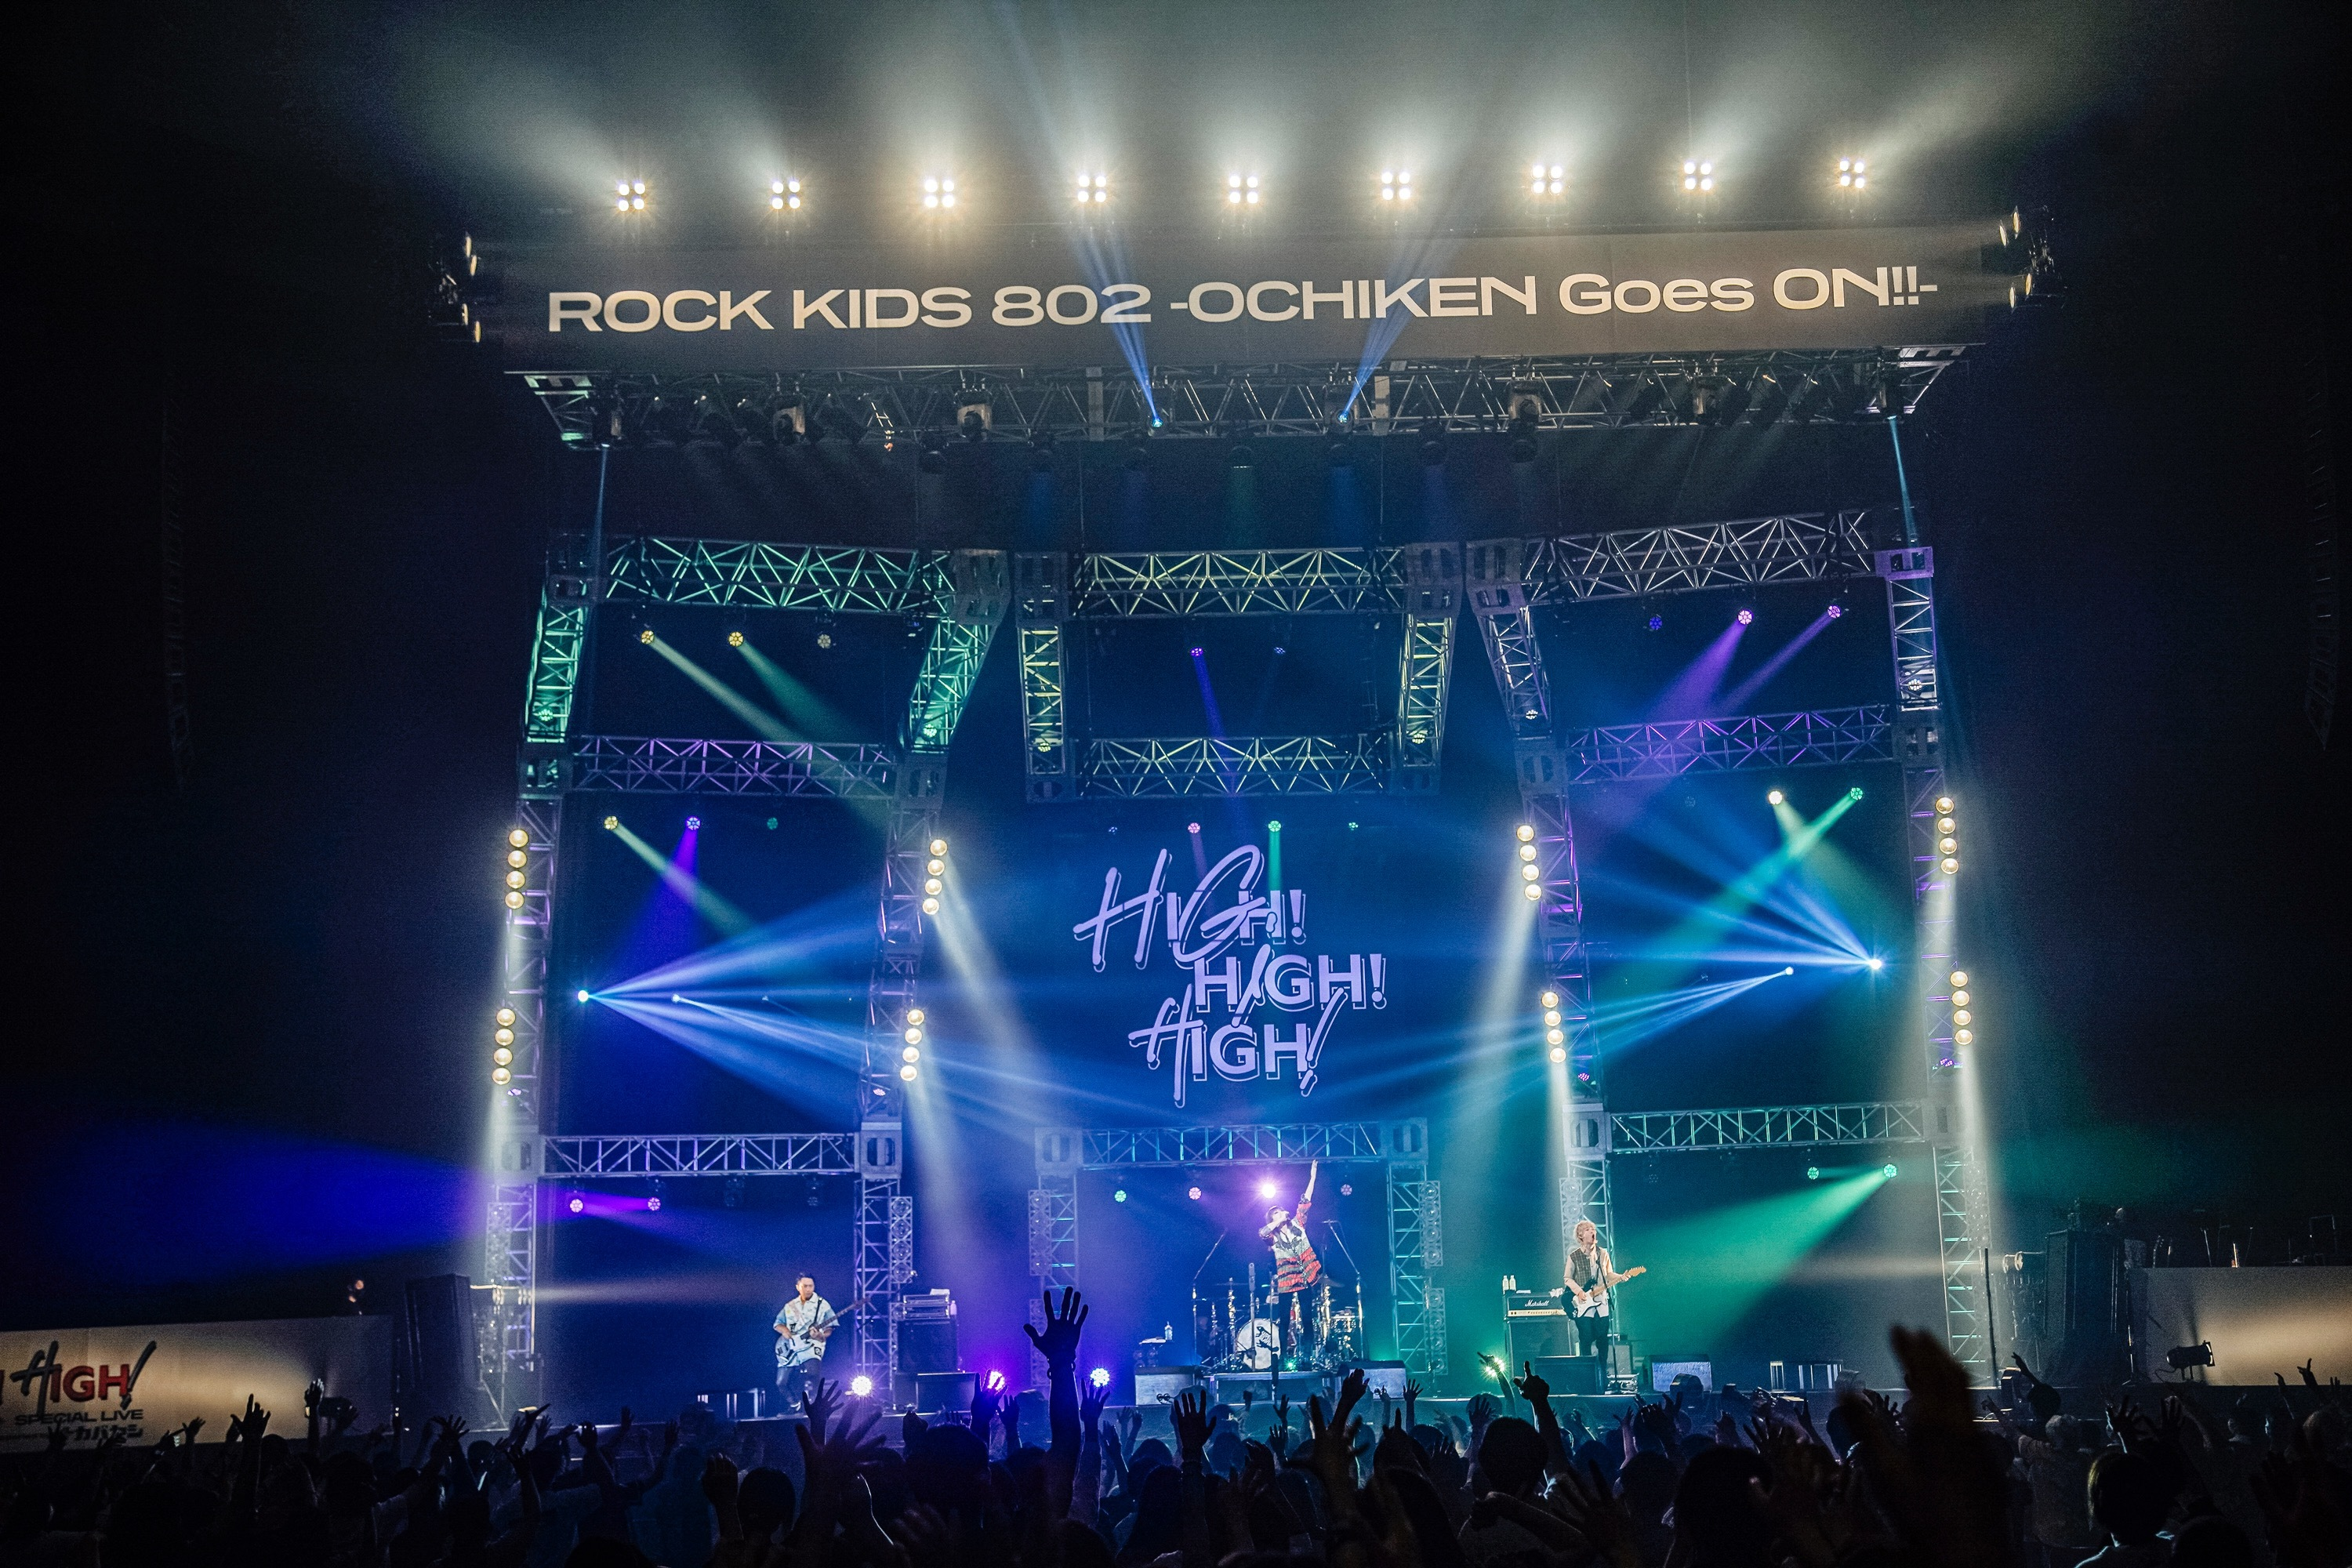 『ROCK KIDS 802 -OCHIKEN Goes ON!!- SPECIAL LIVE HIGH!HIGH!HIGH! supported by ナカバヤシ